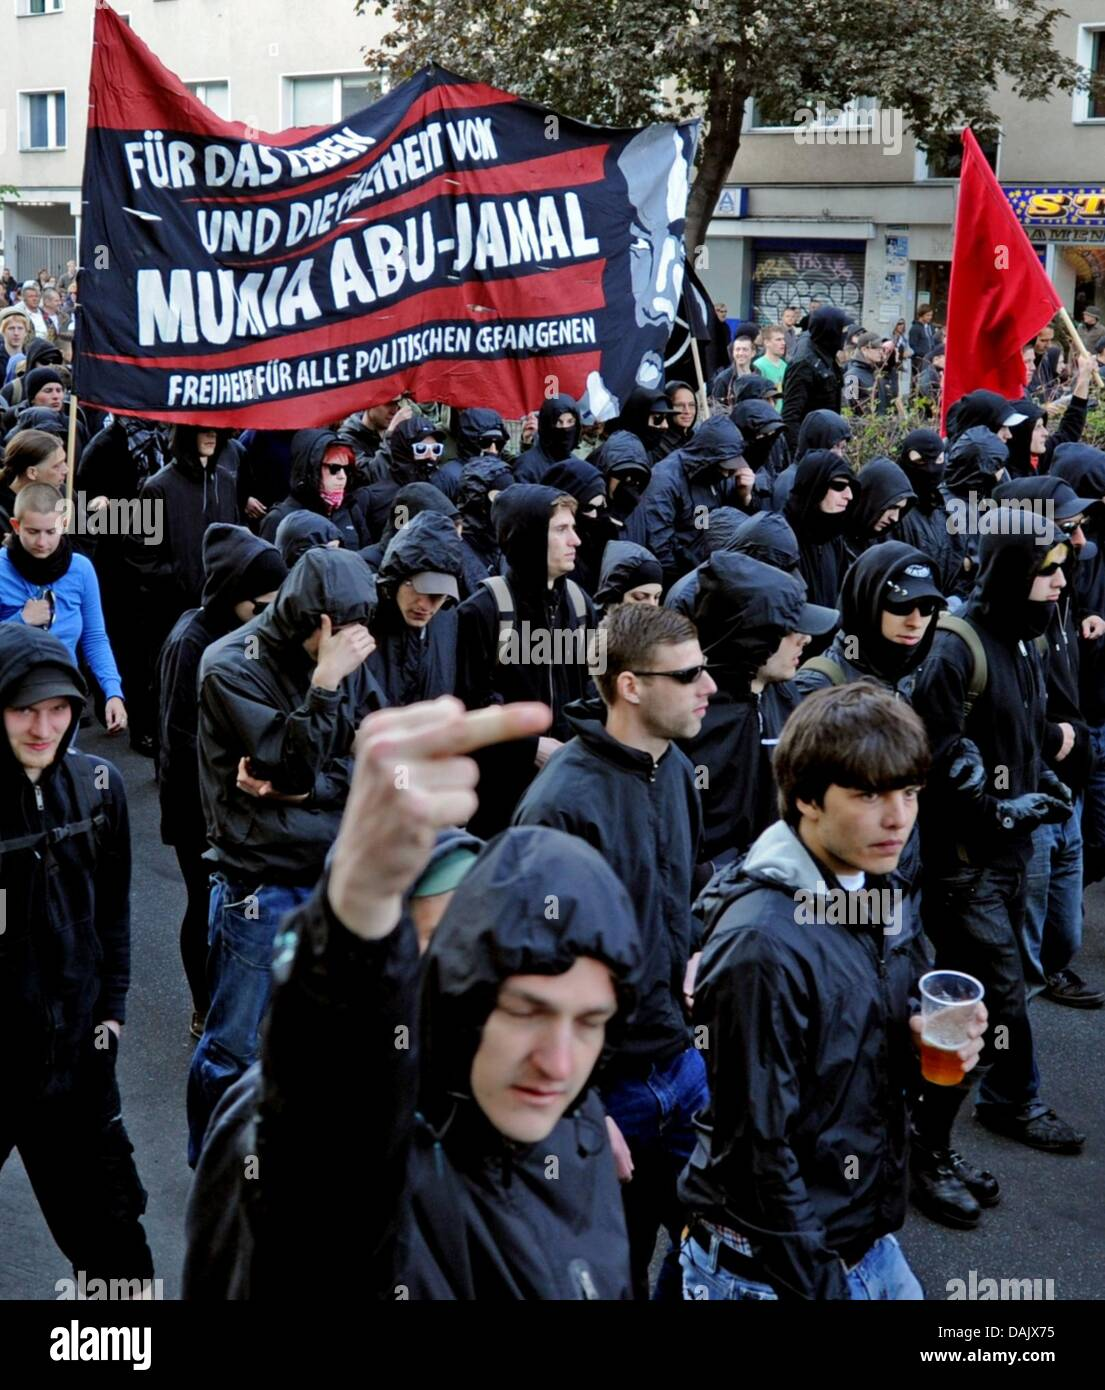 At the revolutionary May Day demonstration leftists sneak their way through Berlin- Kreuzberg, Germany, 1 May 2011. - Stock Image